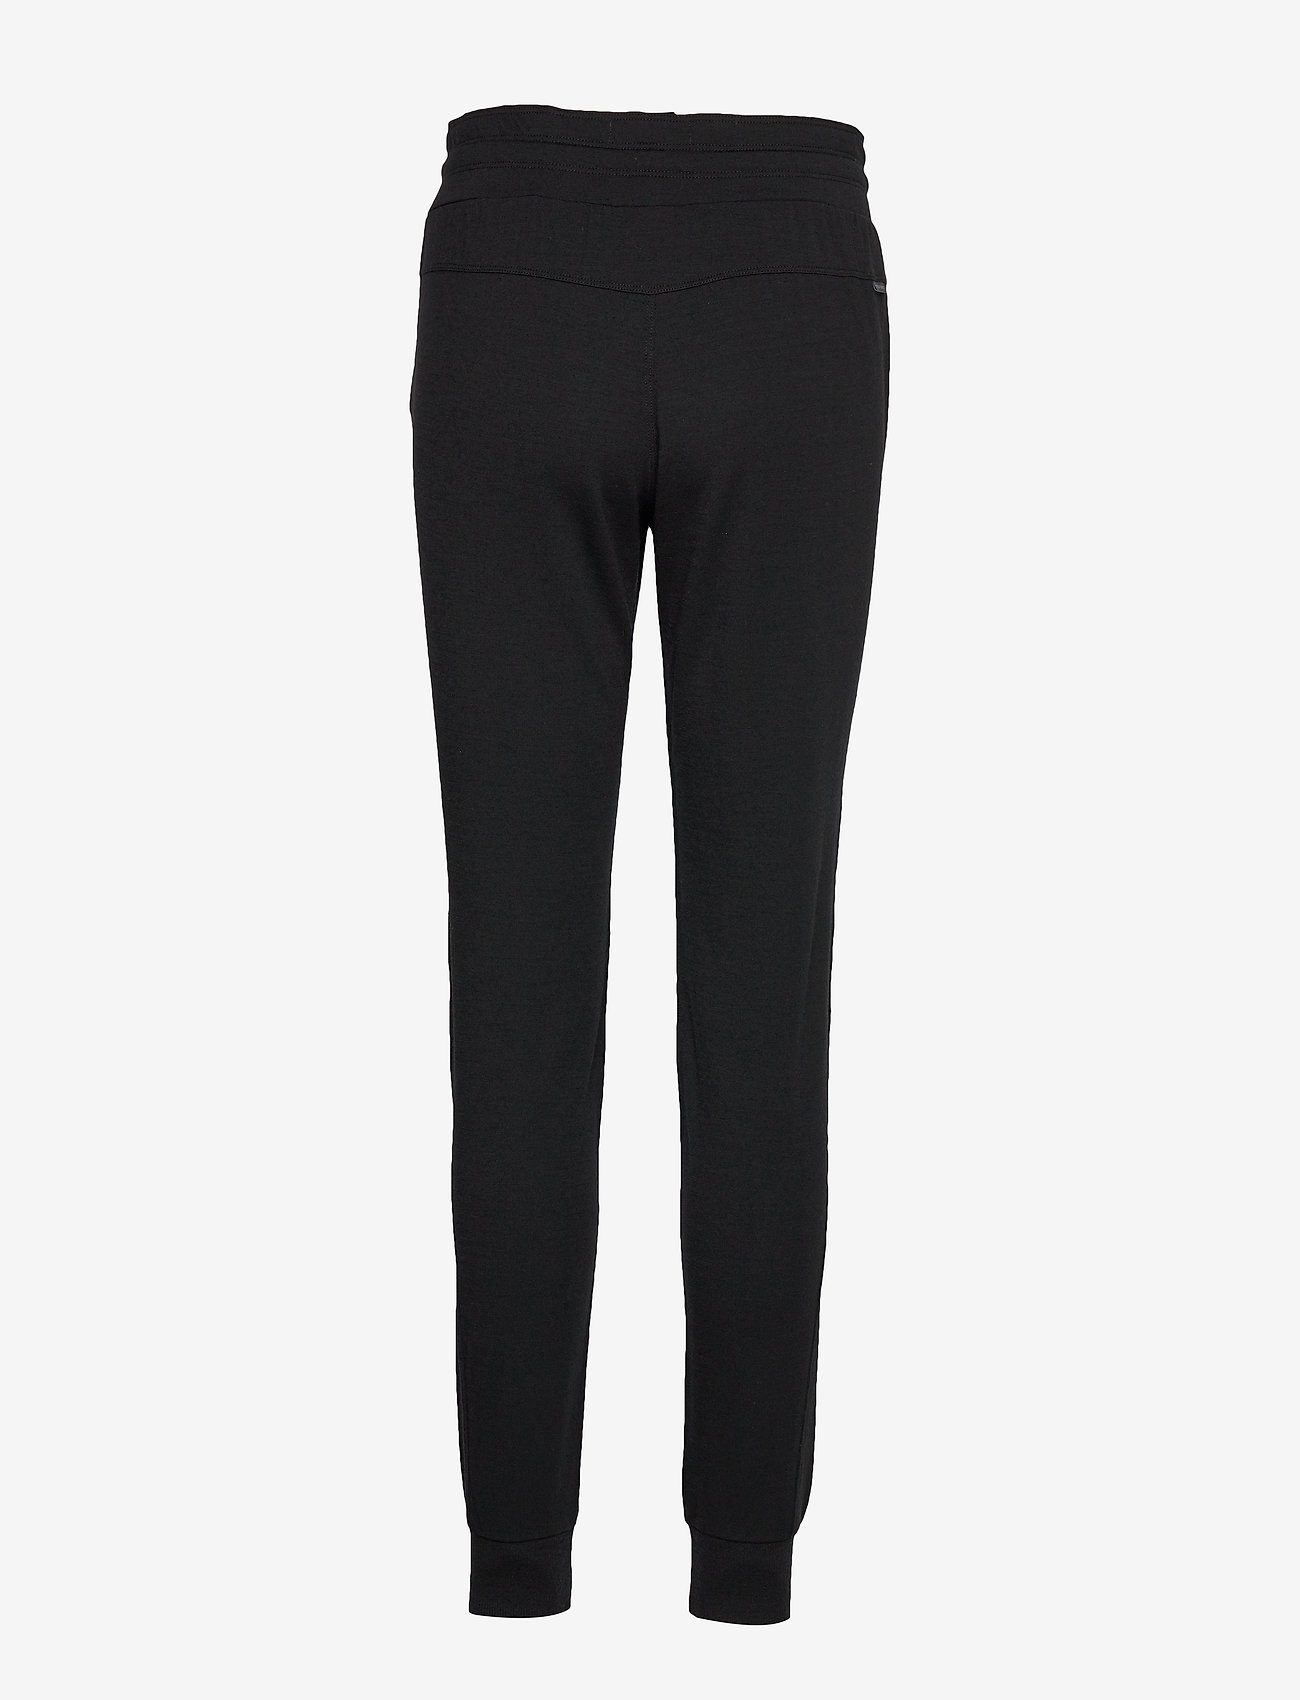 Icebreaker - Wmns Crush Pants - pants - black - 1